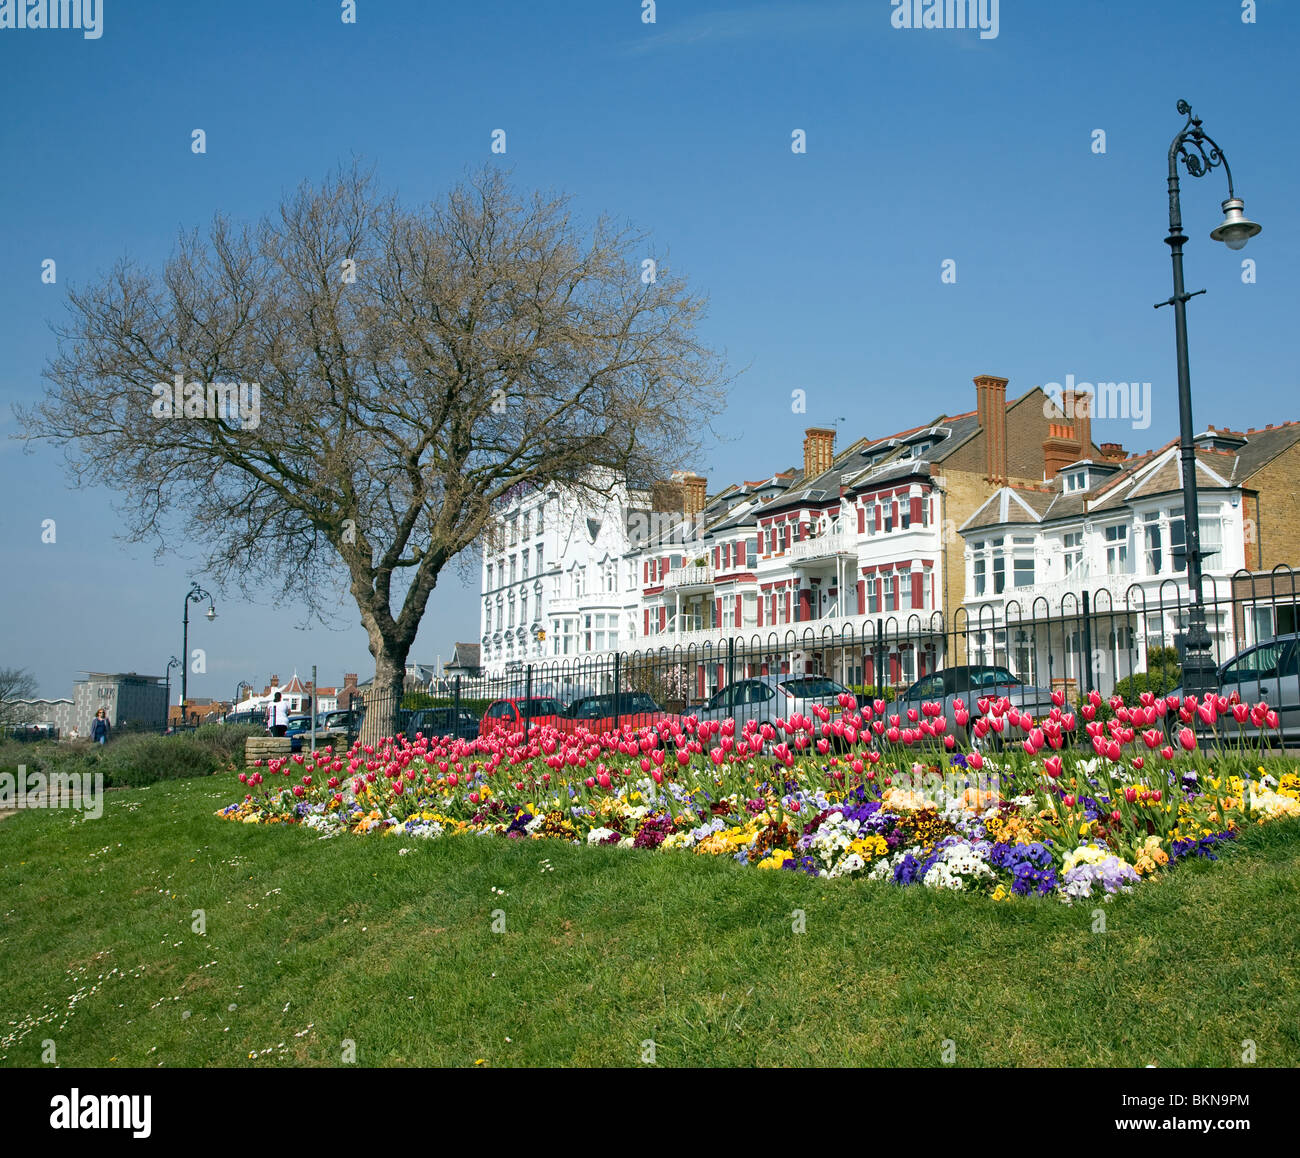 Flower beds in Cliff Gardens, Westcliff Parade, Southend, Essex Stock Photo